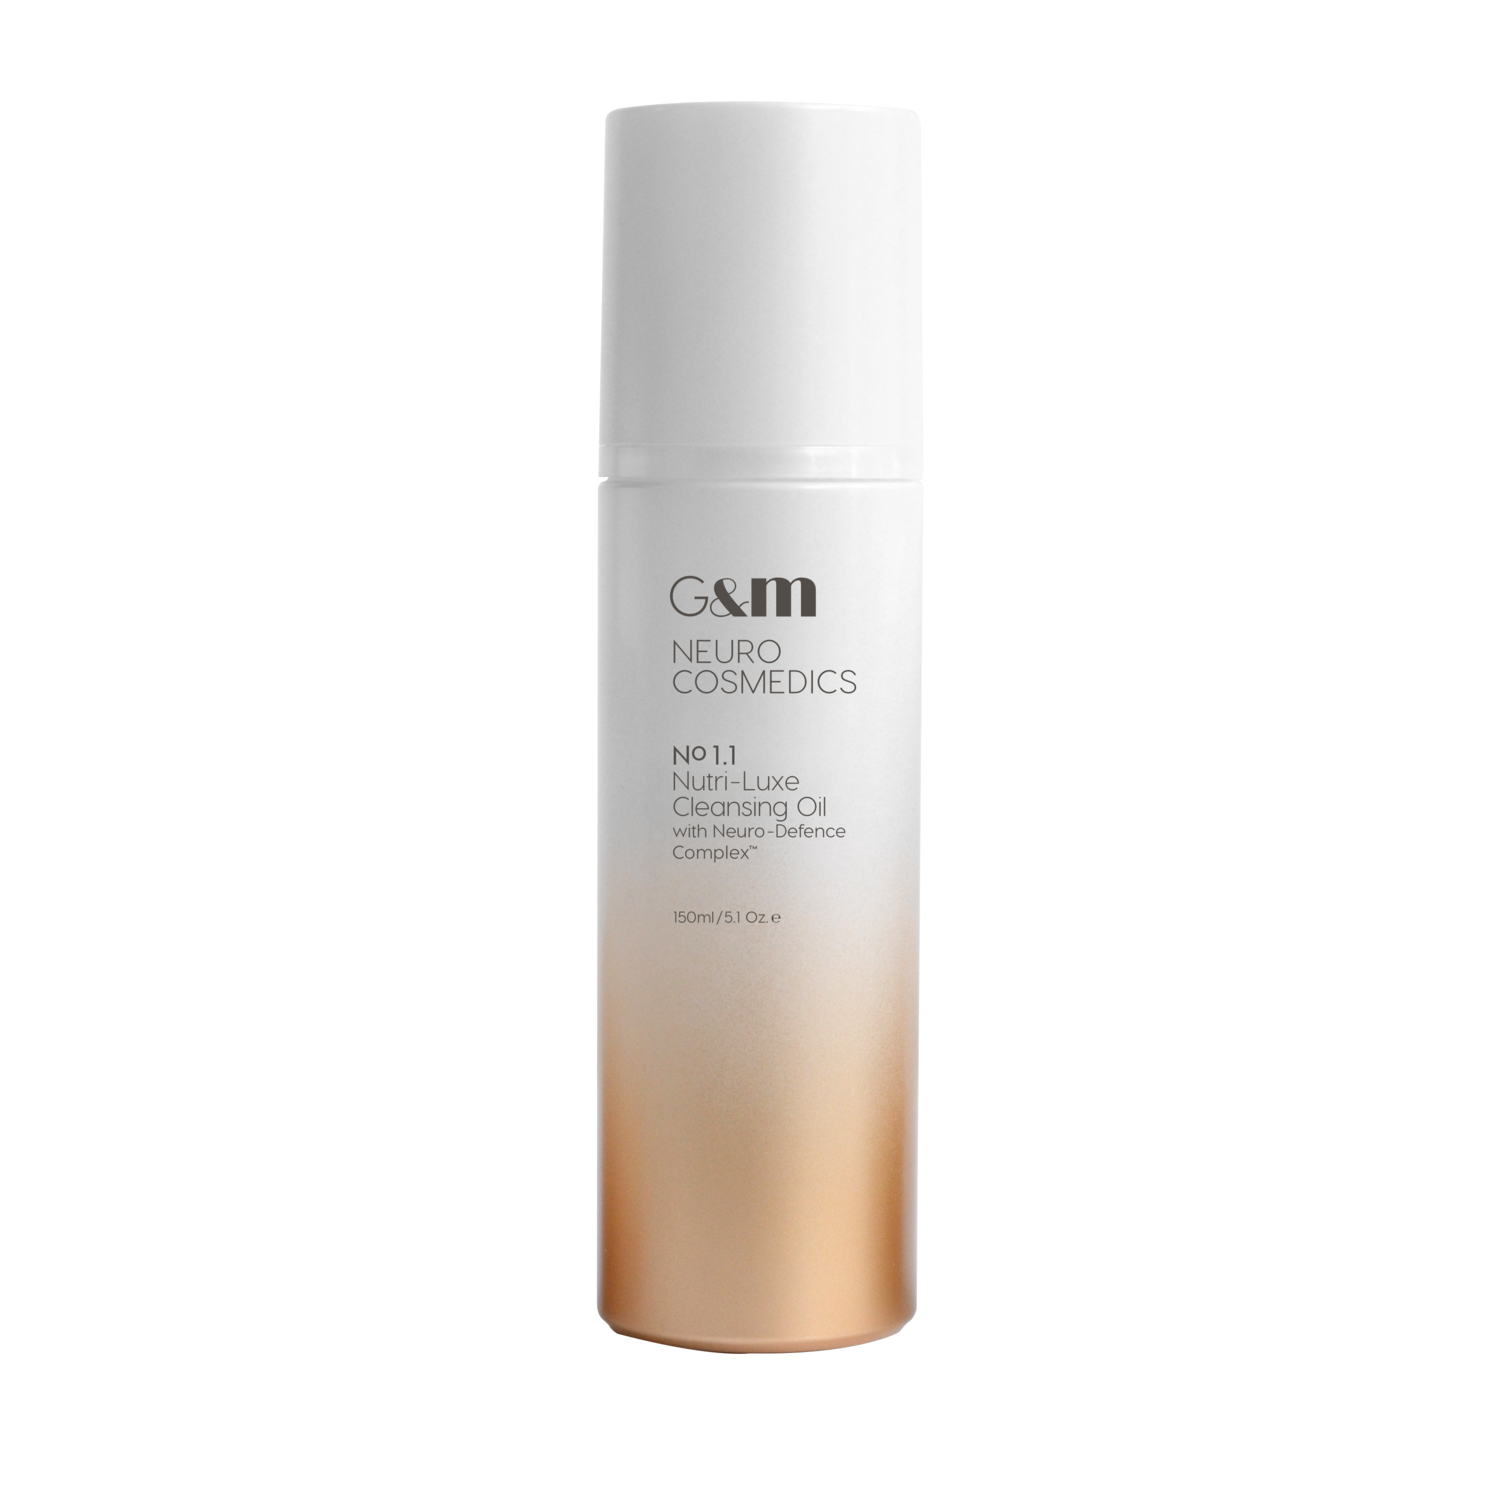 G&M NUTRI-LUXE CLEANSING OIL